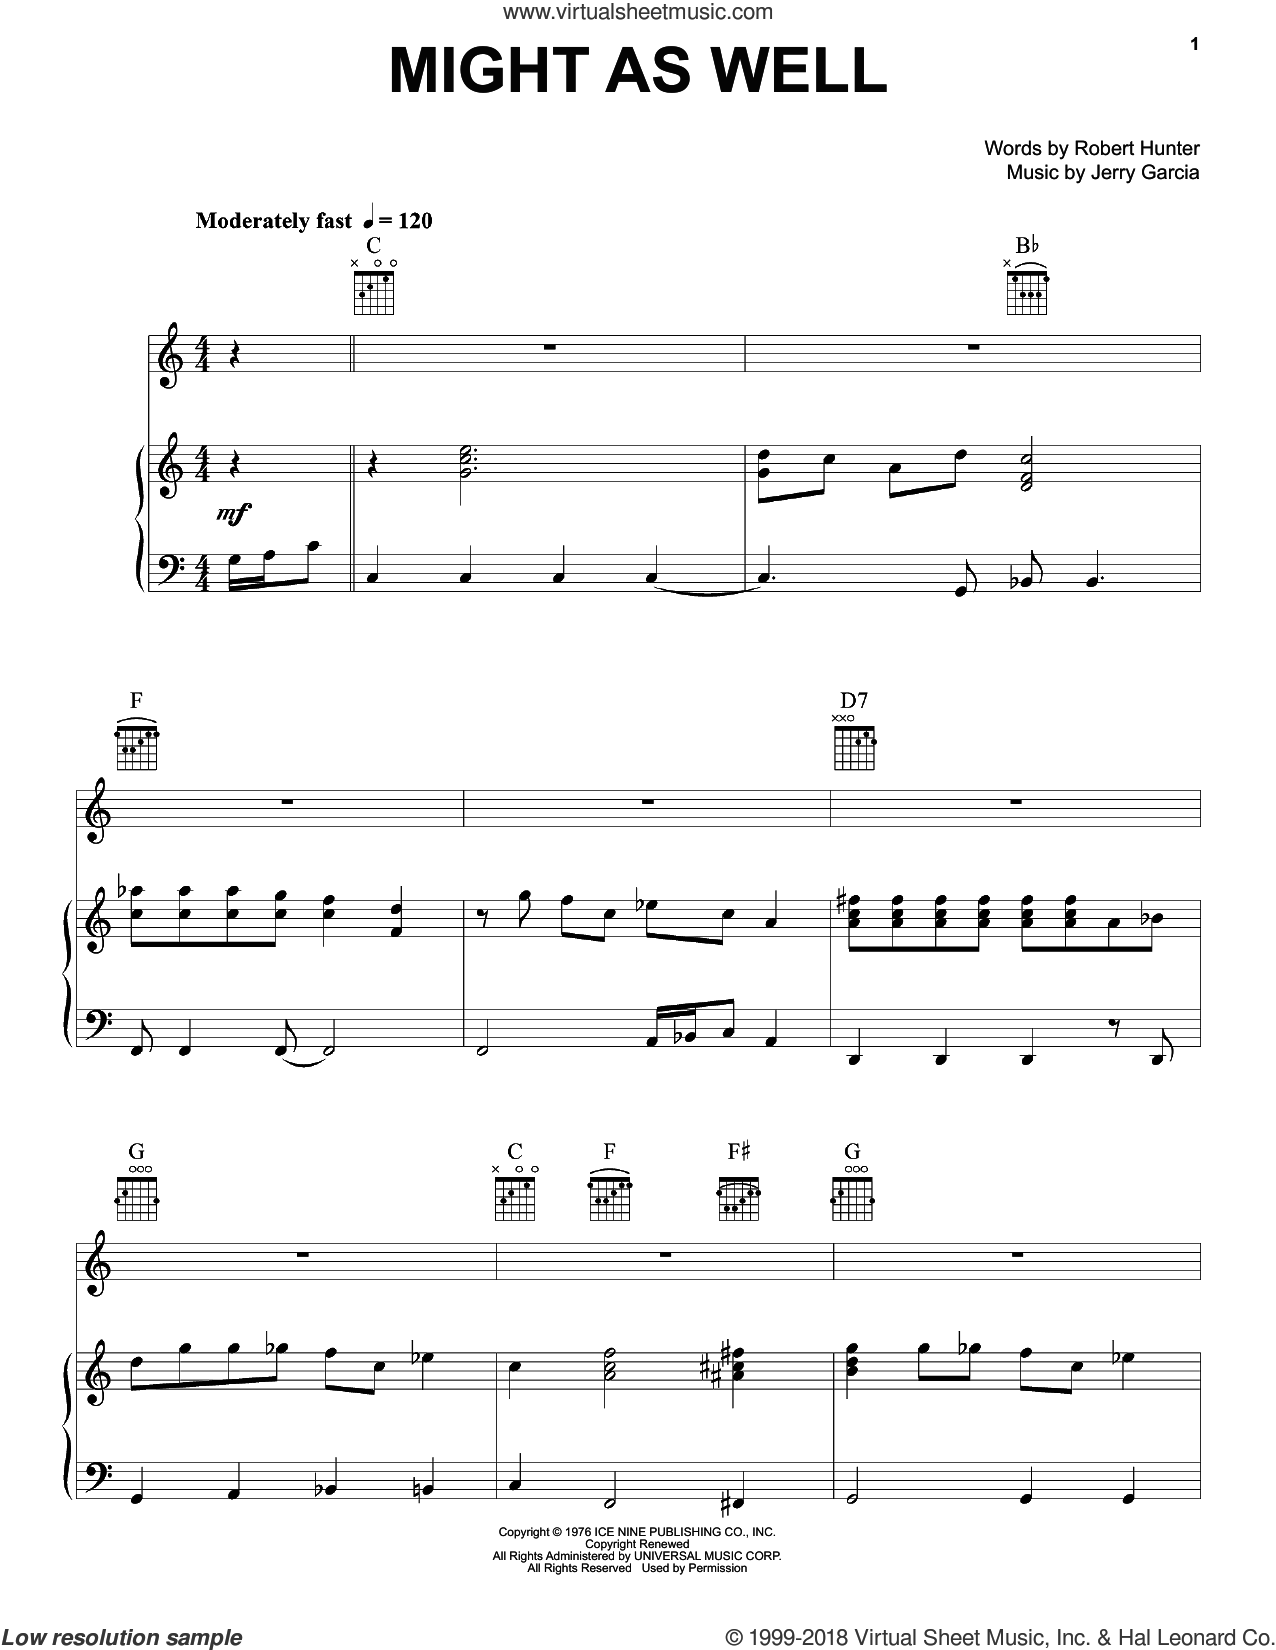 Might As Well sheet music for voice, piano or guitar by Grateful Dead, Jerry Garcia and Robert Hunter, intermediate